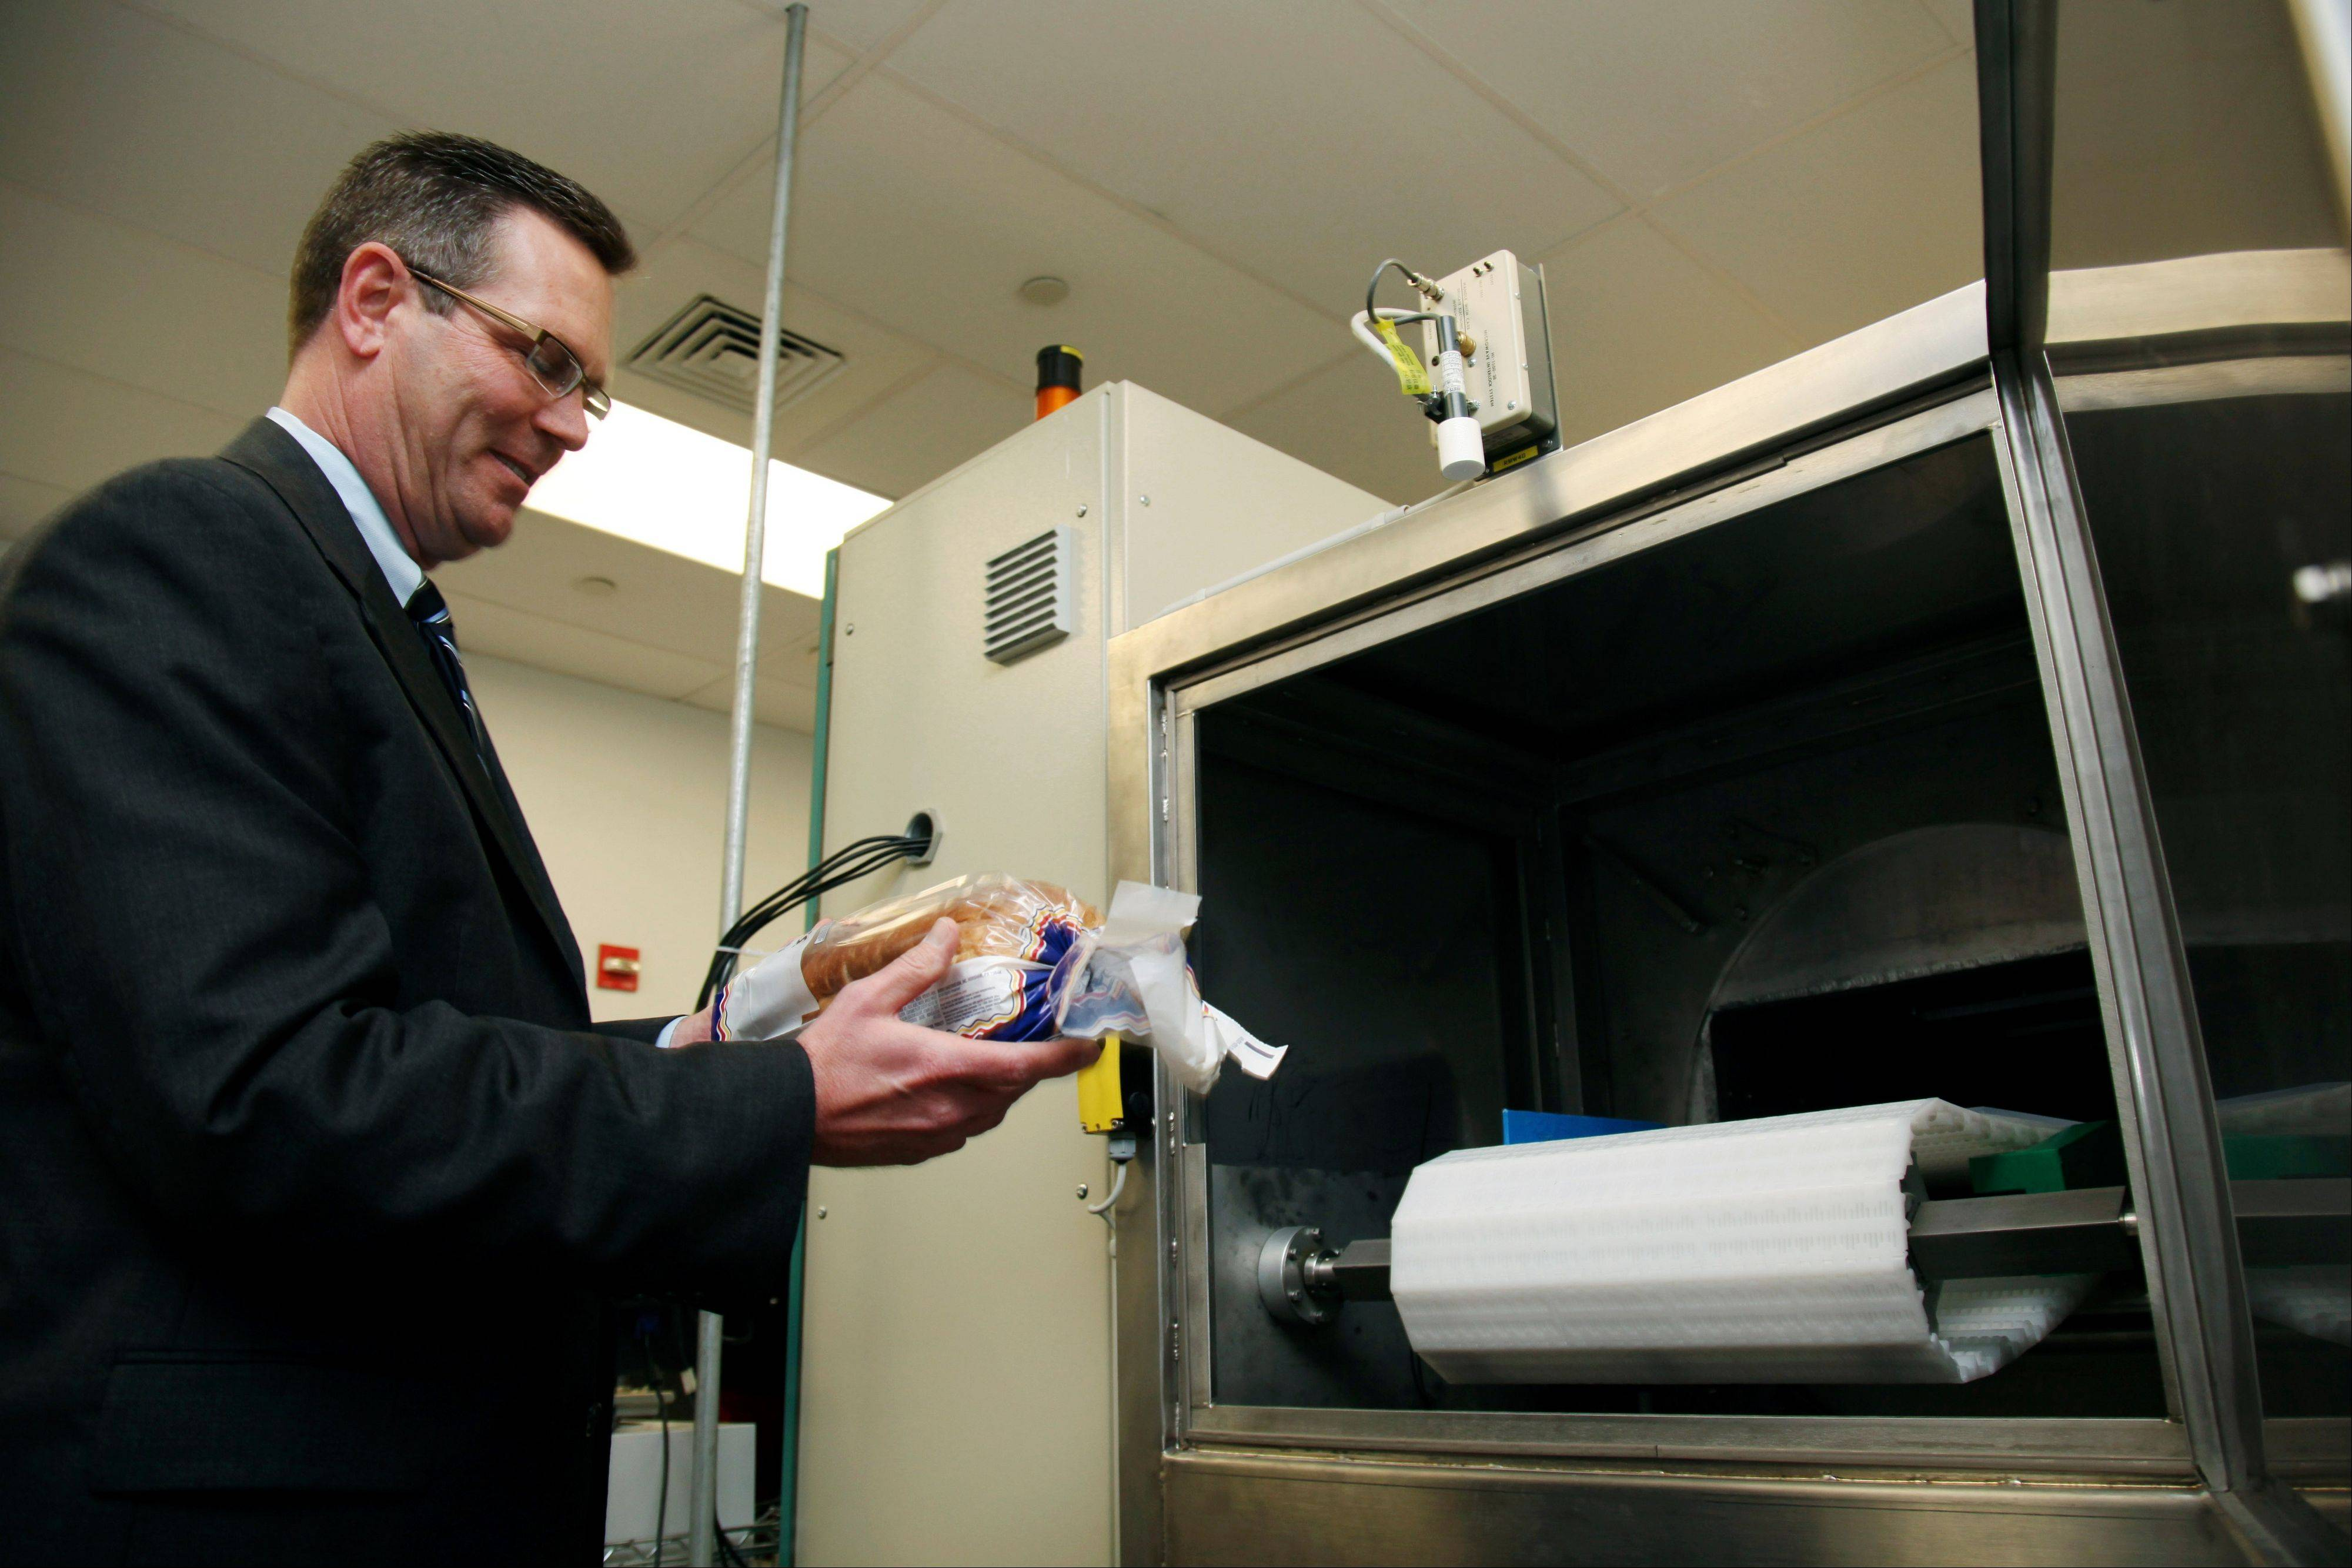 Don Stull, chief executive officer of Microzap, Inc., places a loaf of bread inside a patented microwave that kills mold spores in Lubbock, Texas. The company claims the technology allows bread to stay mold-free for 60 days.